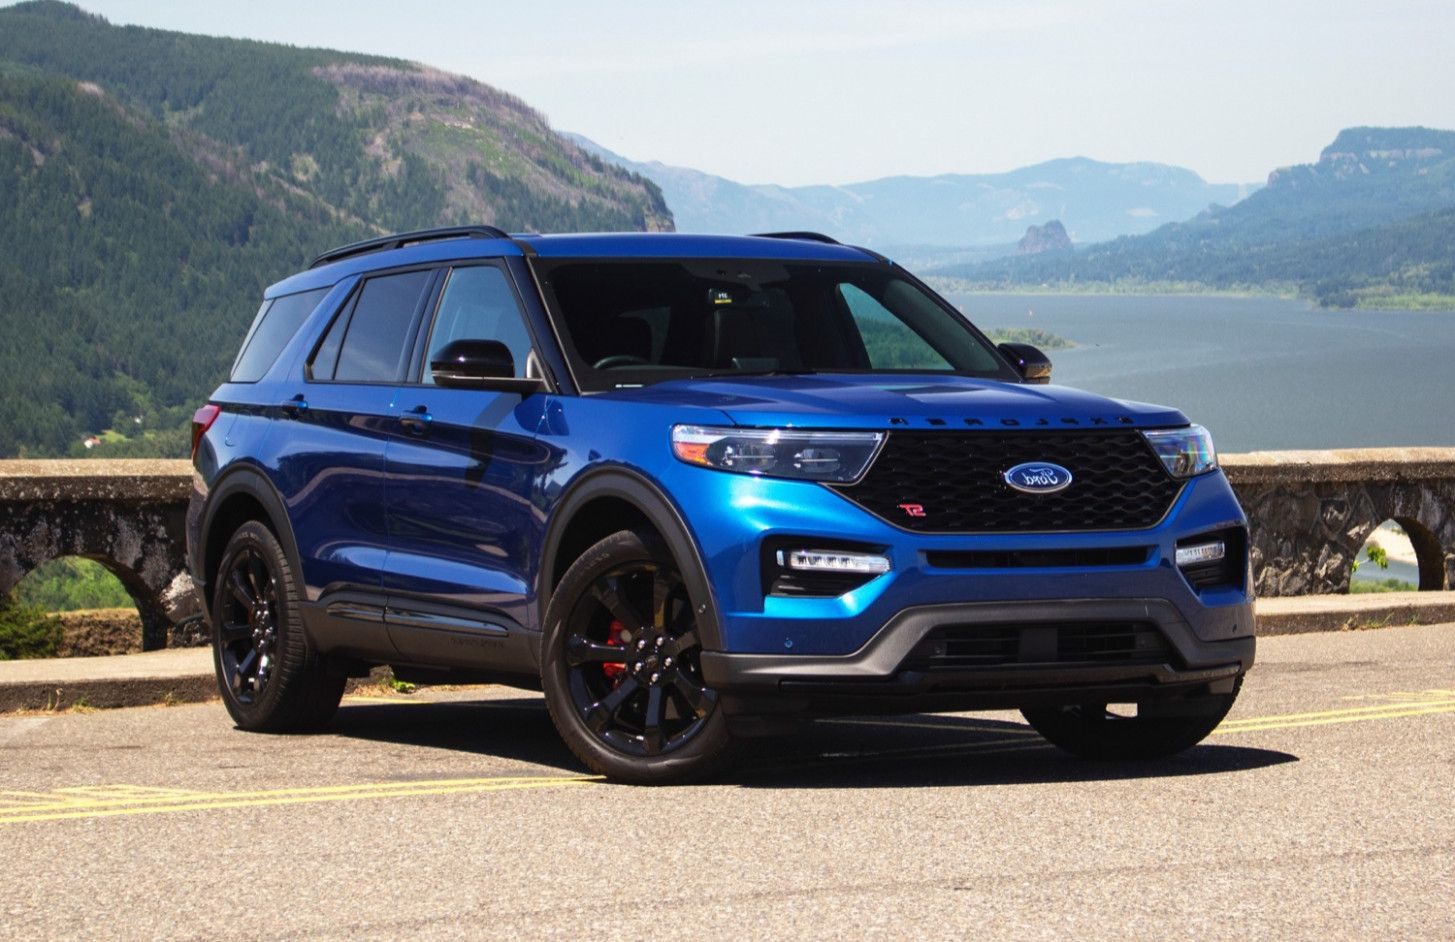 Ten Reasons You Should Fall In Love With Ford Q2 2020 Suv For Sale Ford Audi Crossover